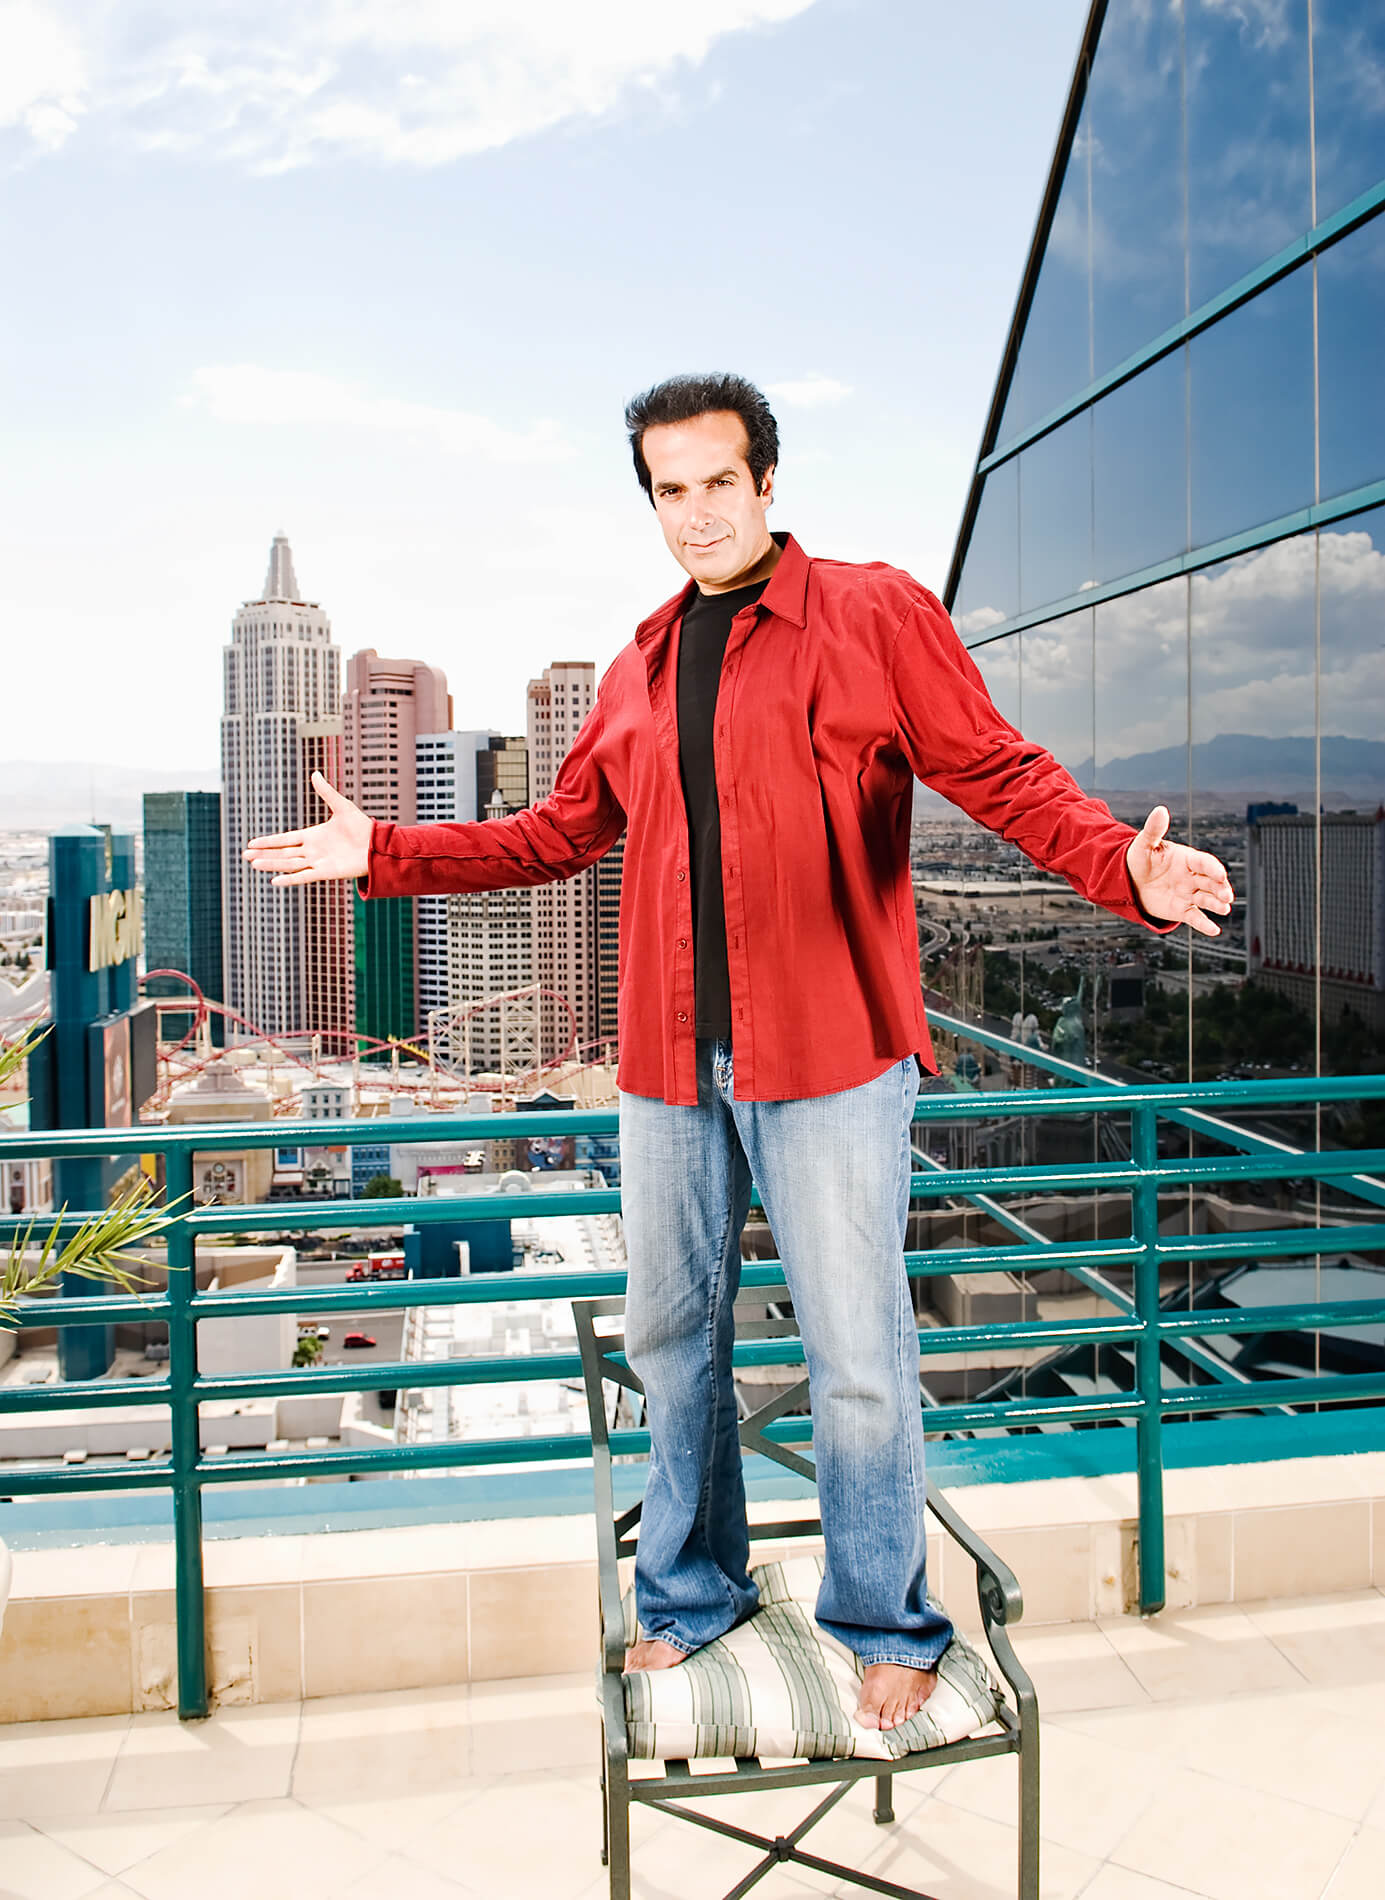 David Copperfield with Las Vegas skyline